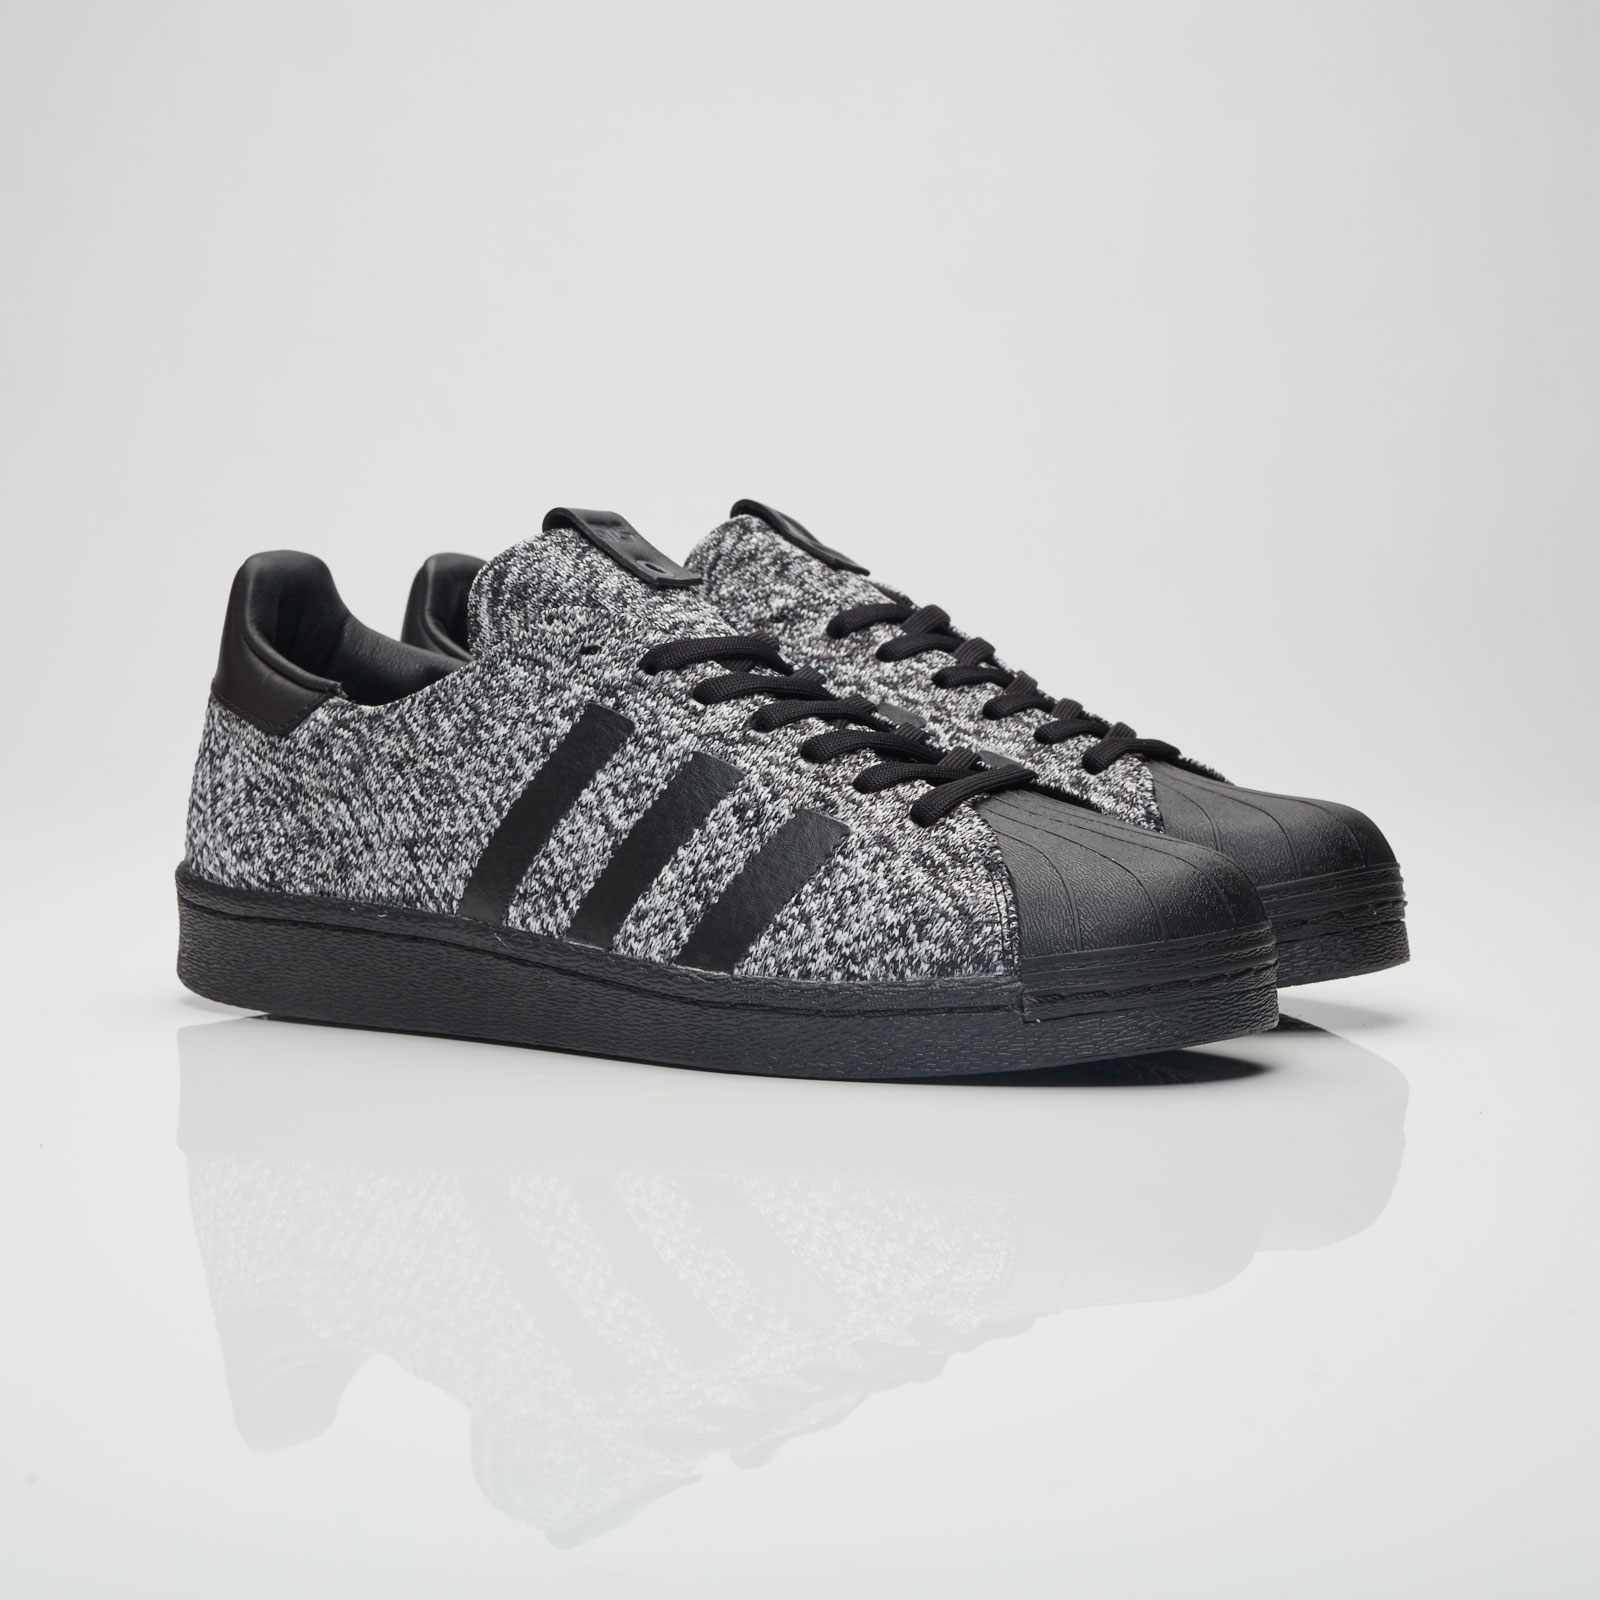 Adidas Superstar köpa